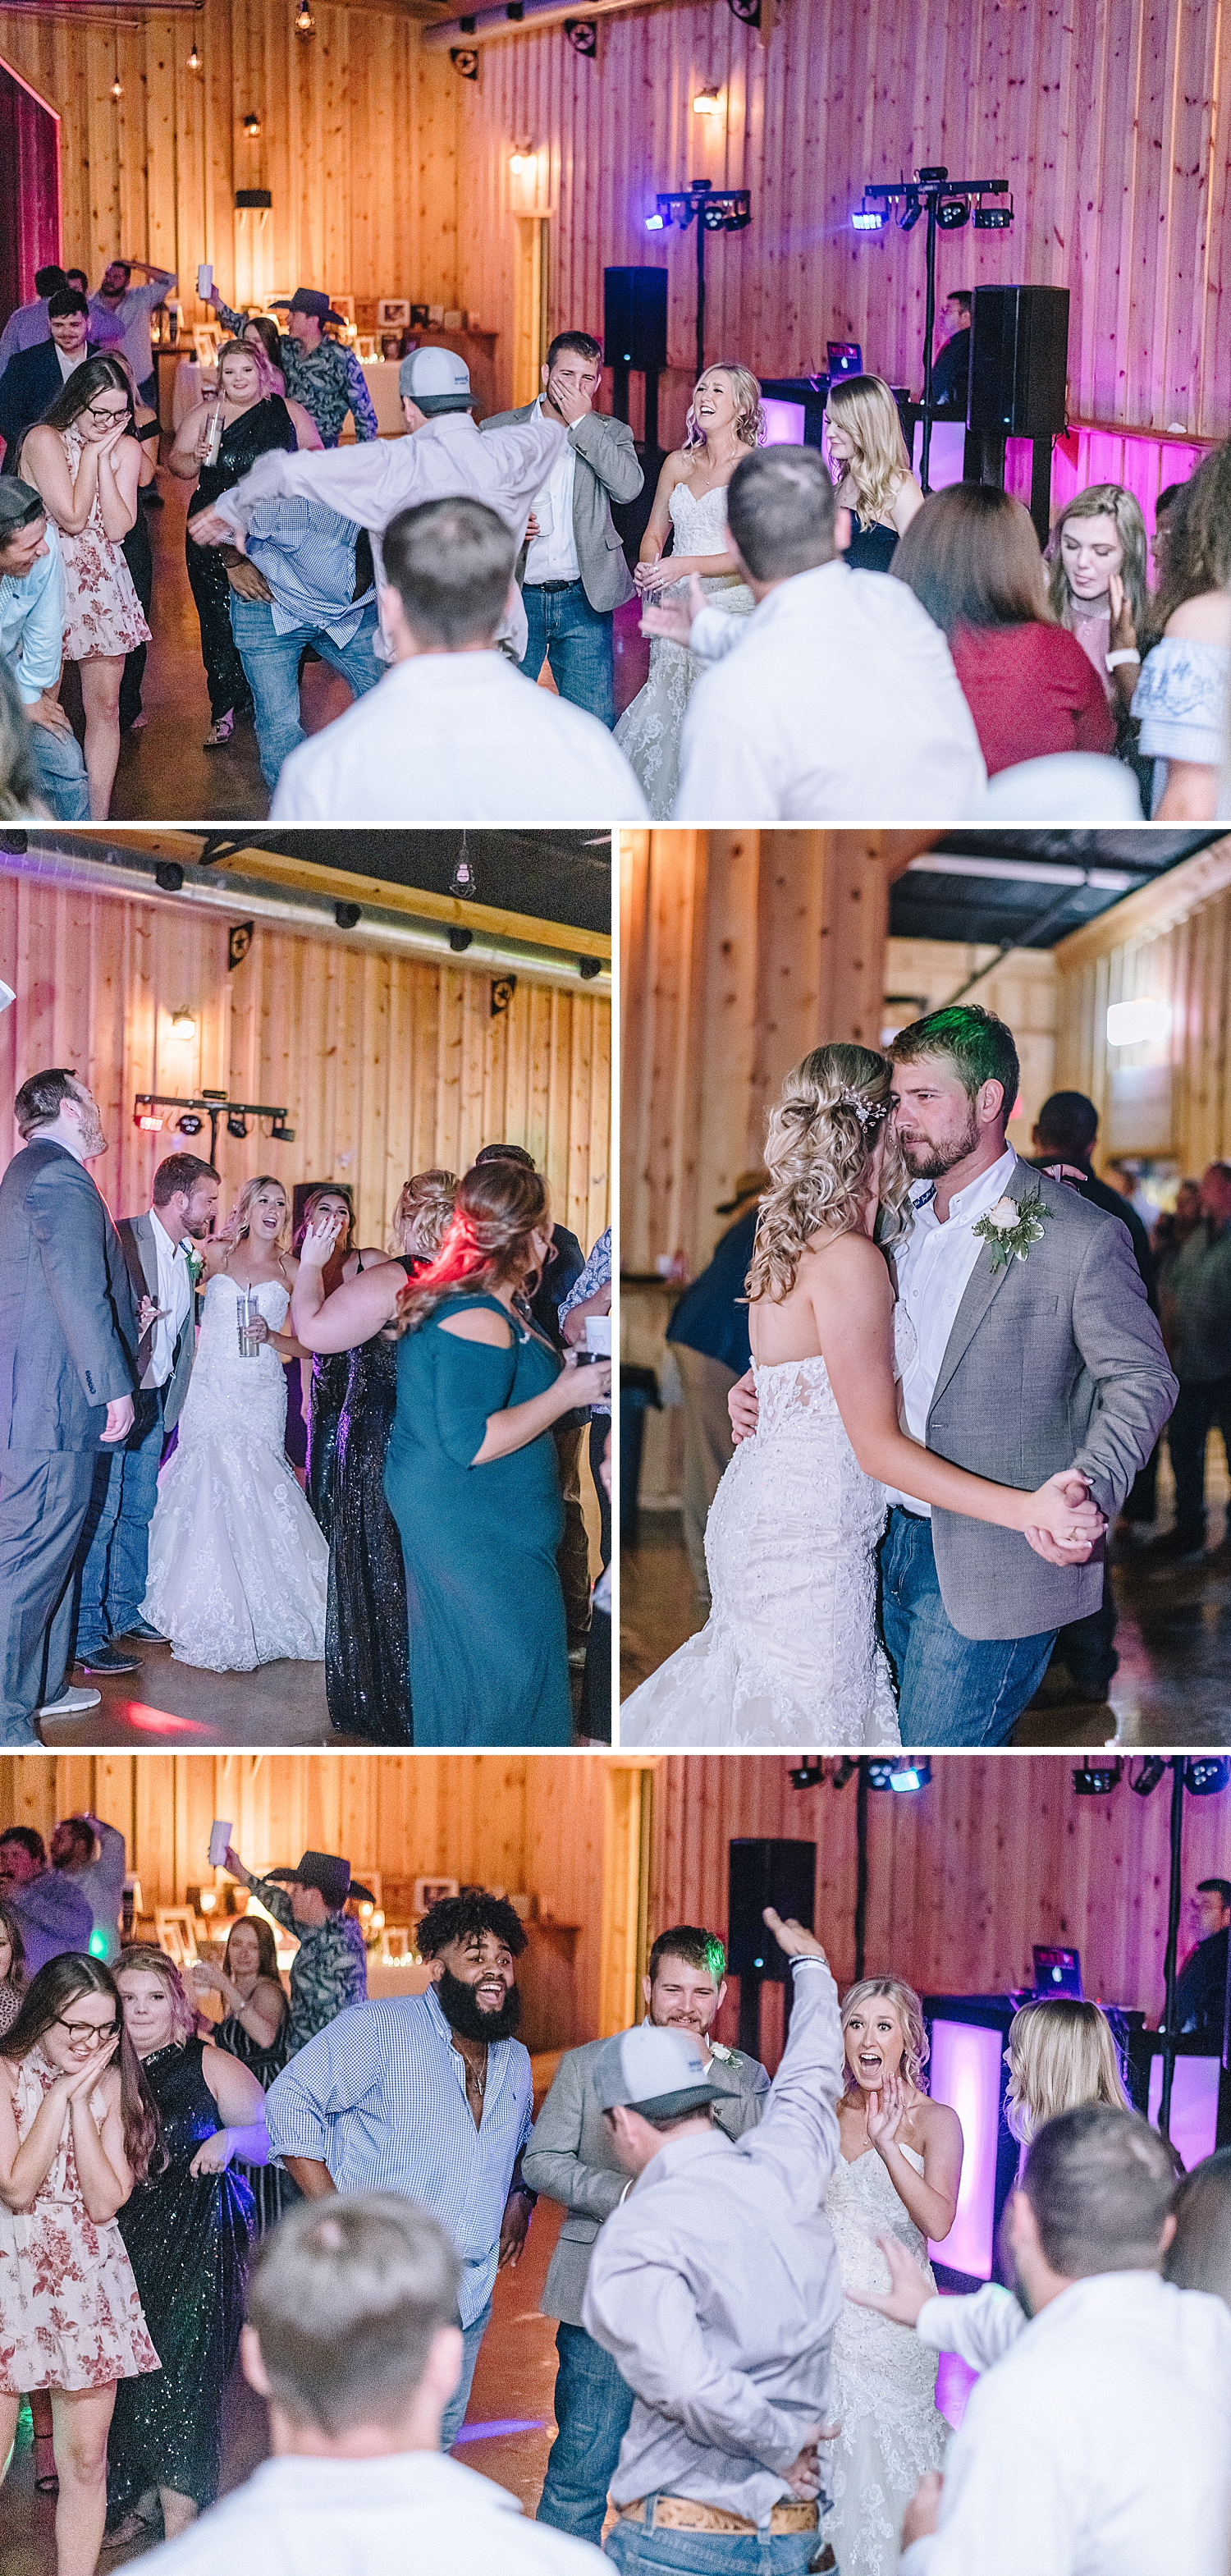 Rackler-Ranch-LaVernia-Texas-Wedding-Carly-Barton-Photography_0164.jpg